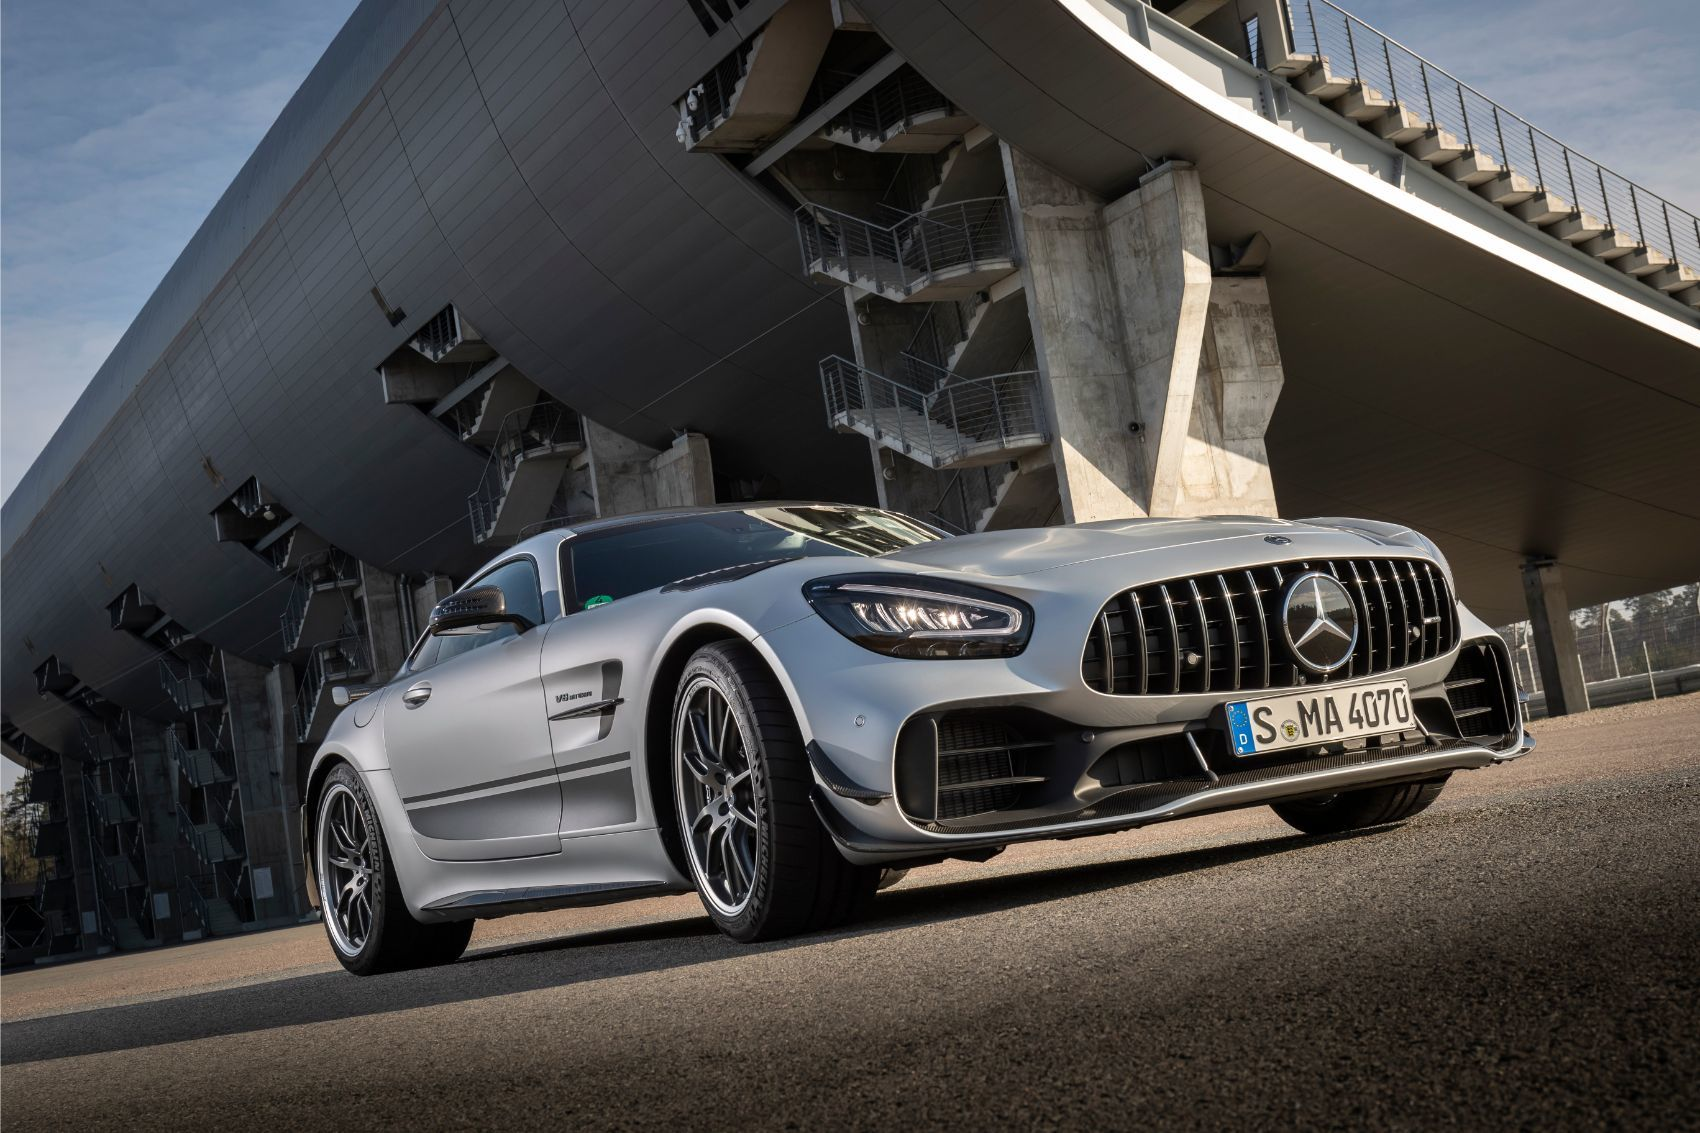 Mercedes-AMG GT R PRO: A Quick Look At This Track-Ready Machine